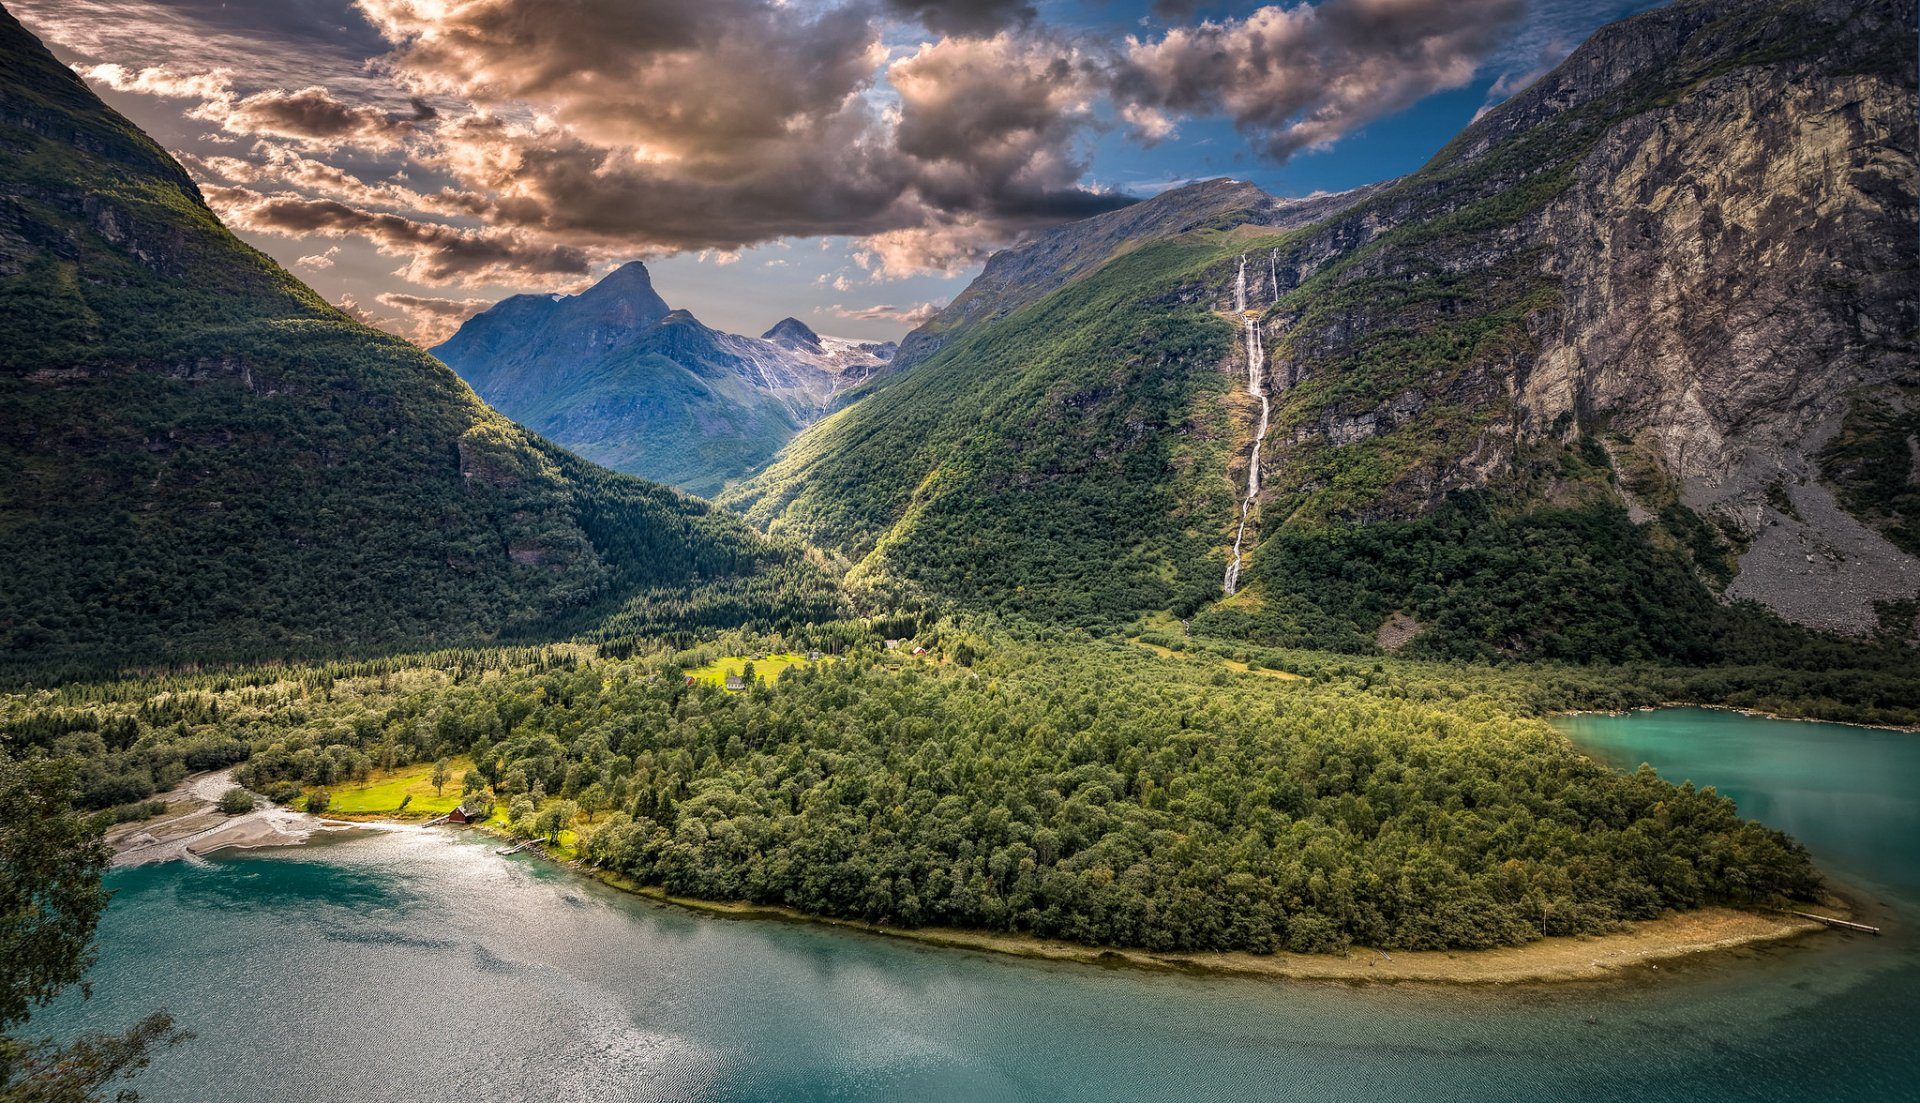 Earth - Fjord  Mountain Norway Landscape Waterfall Forest Cloud HDR Summer Sunshine Wallpaper